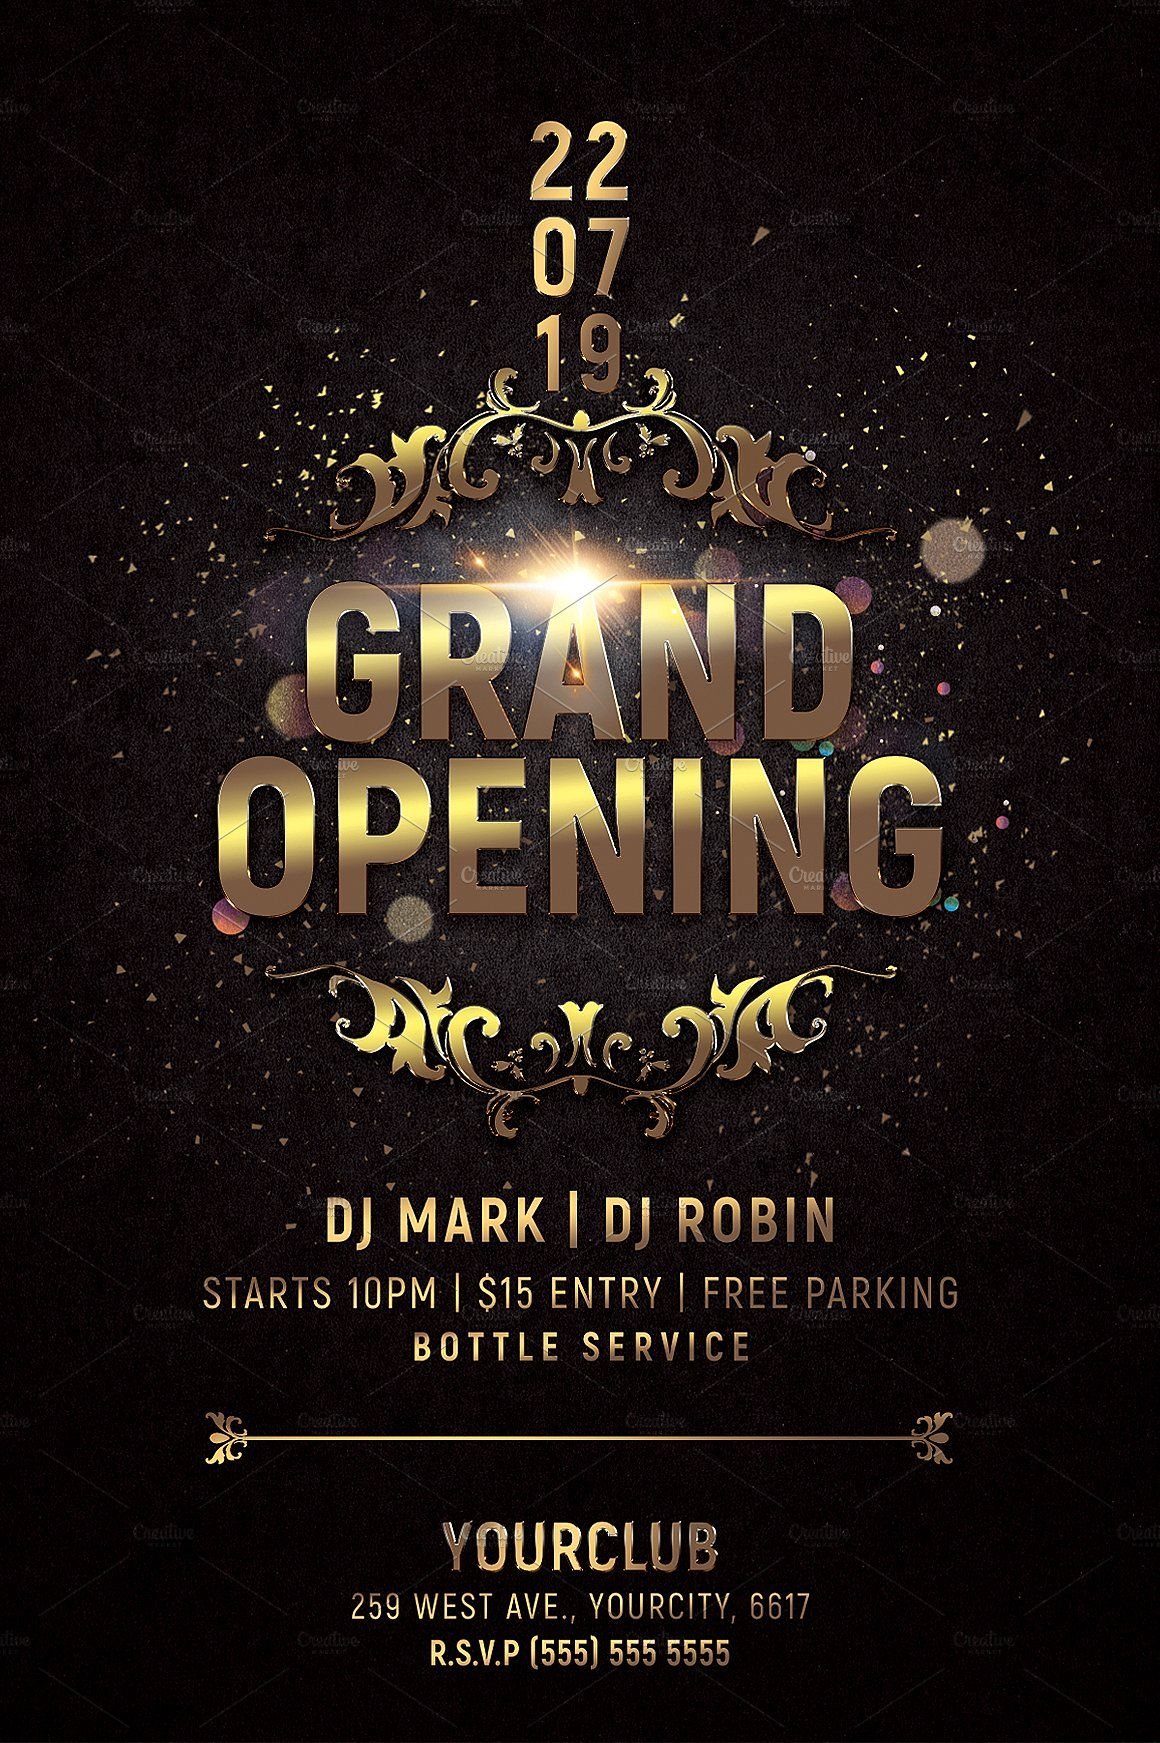 Grand Opening Party Flyer by Hotpin on @creativemarket # ...